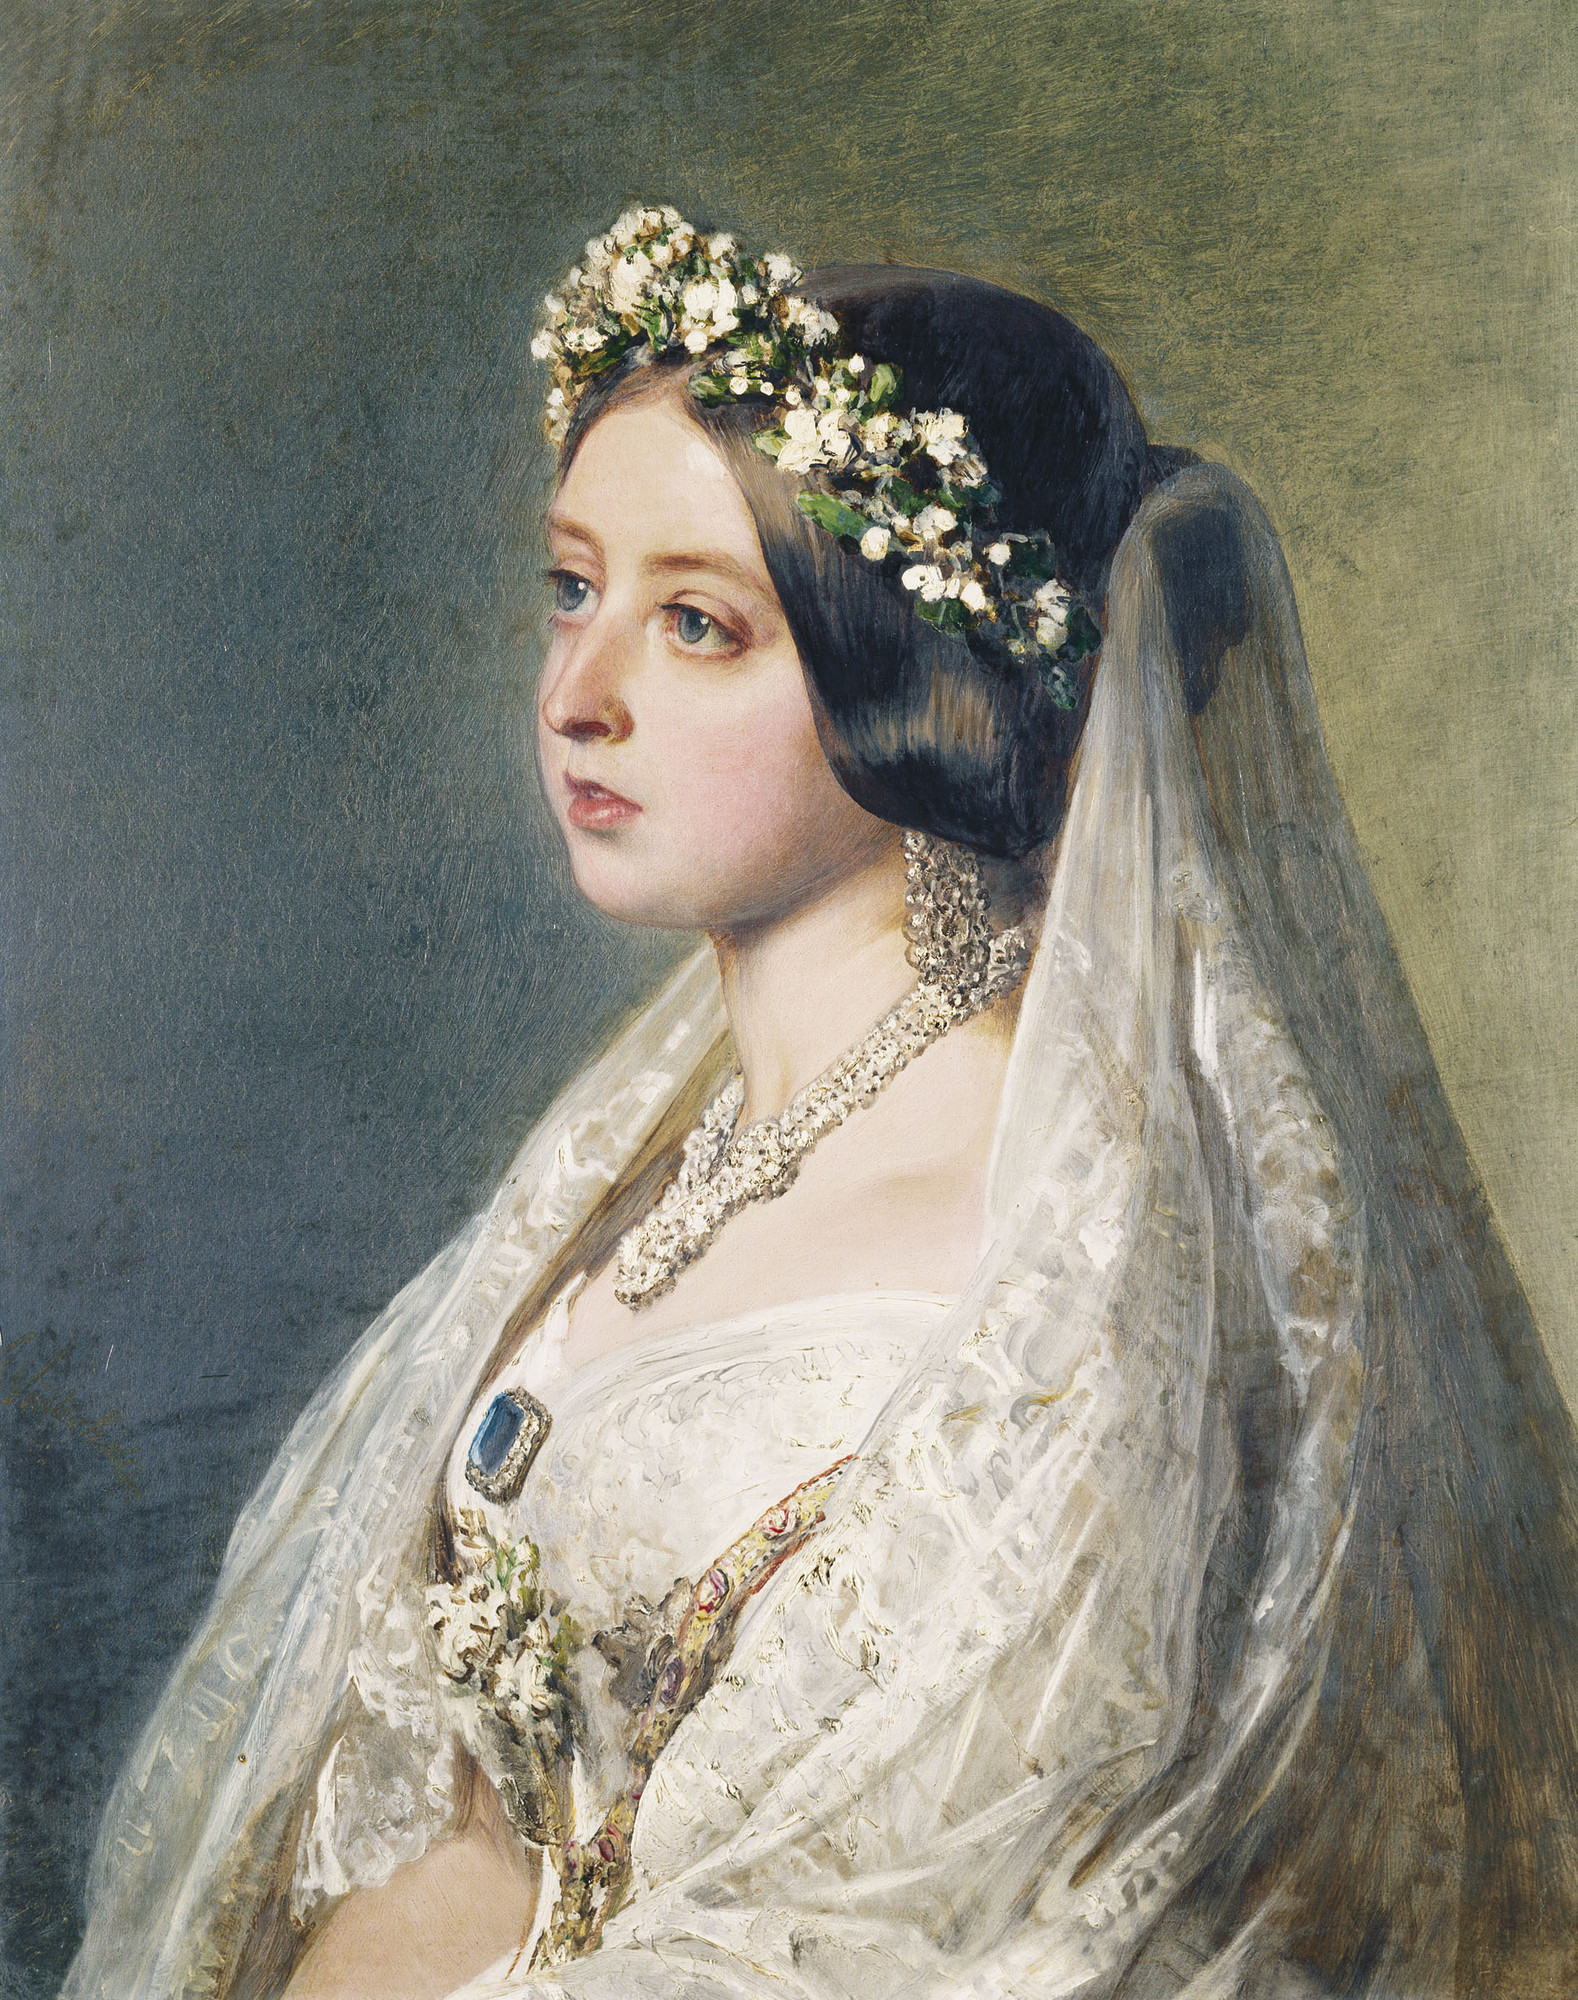 http://upload.wikimedia.org/wikipedia/commons/d/d3/Queen_Victoria%2C_1847.jpg